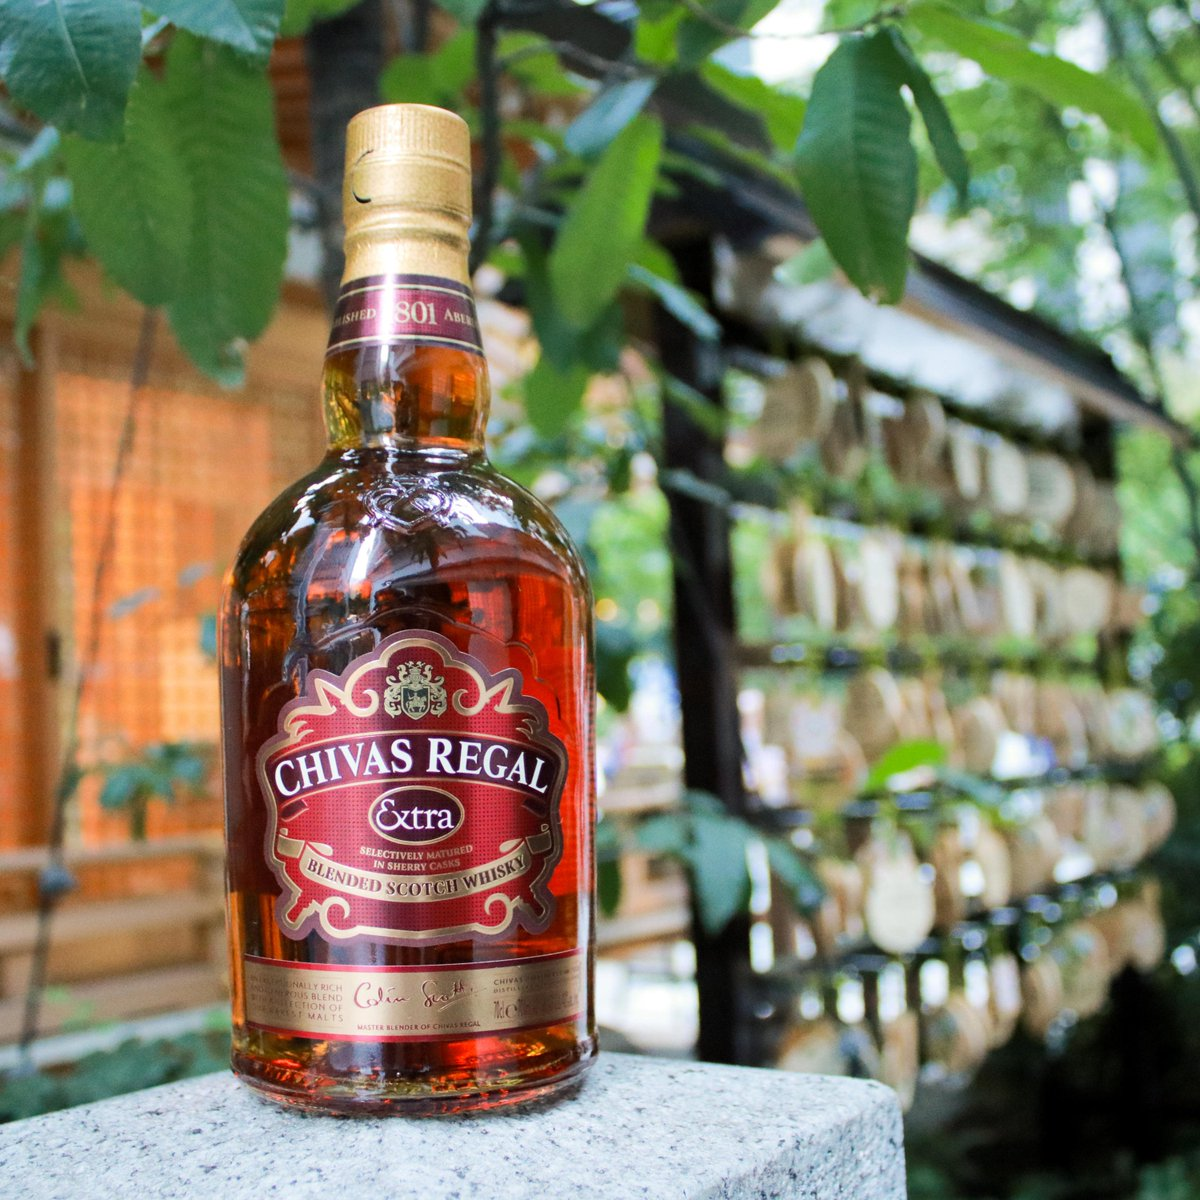 Peaceful setting, smooth whisky. Escape the hustle and bustle with a bottle of Chivas Extra. #ChivasExtra #ChivasRegalNG https://t.co/5nCB5R0EJa